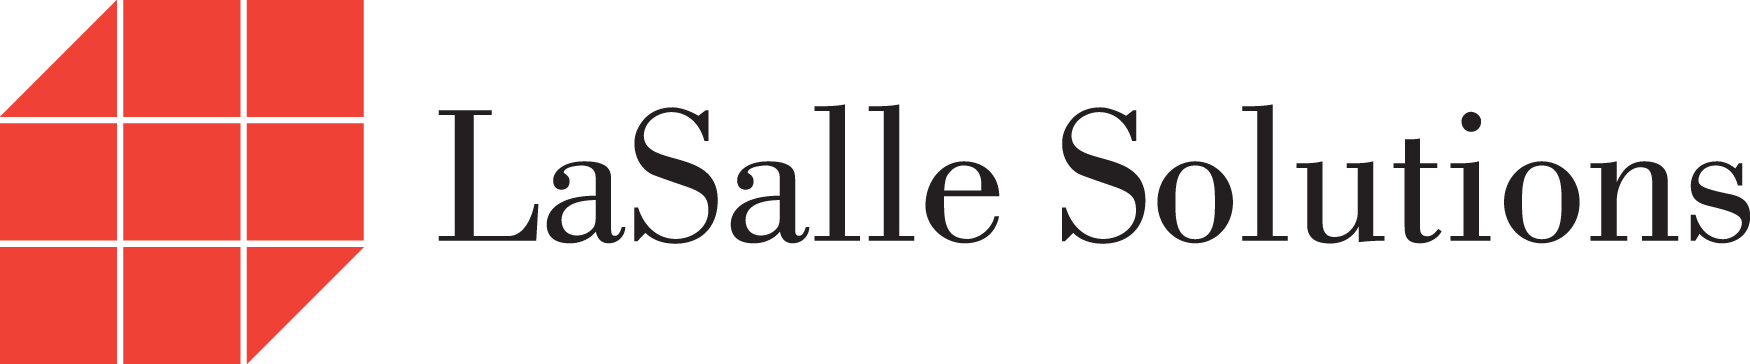 LaSalle Solutions full-color logo.png